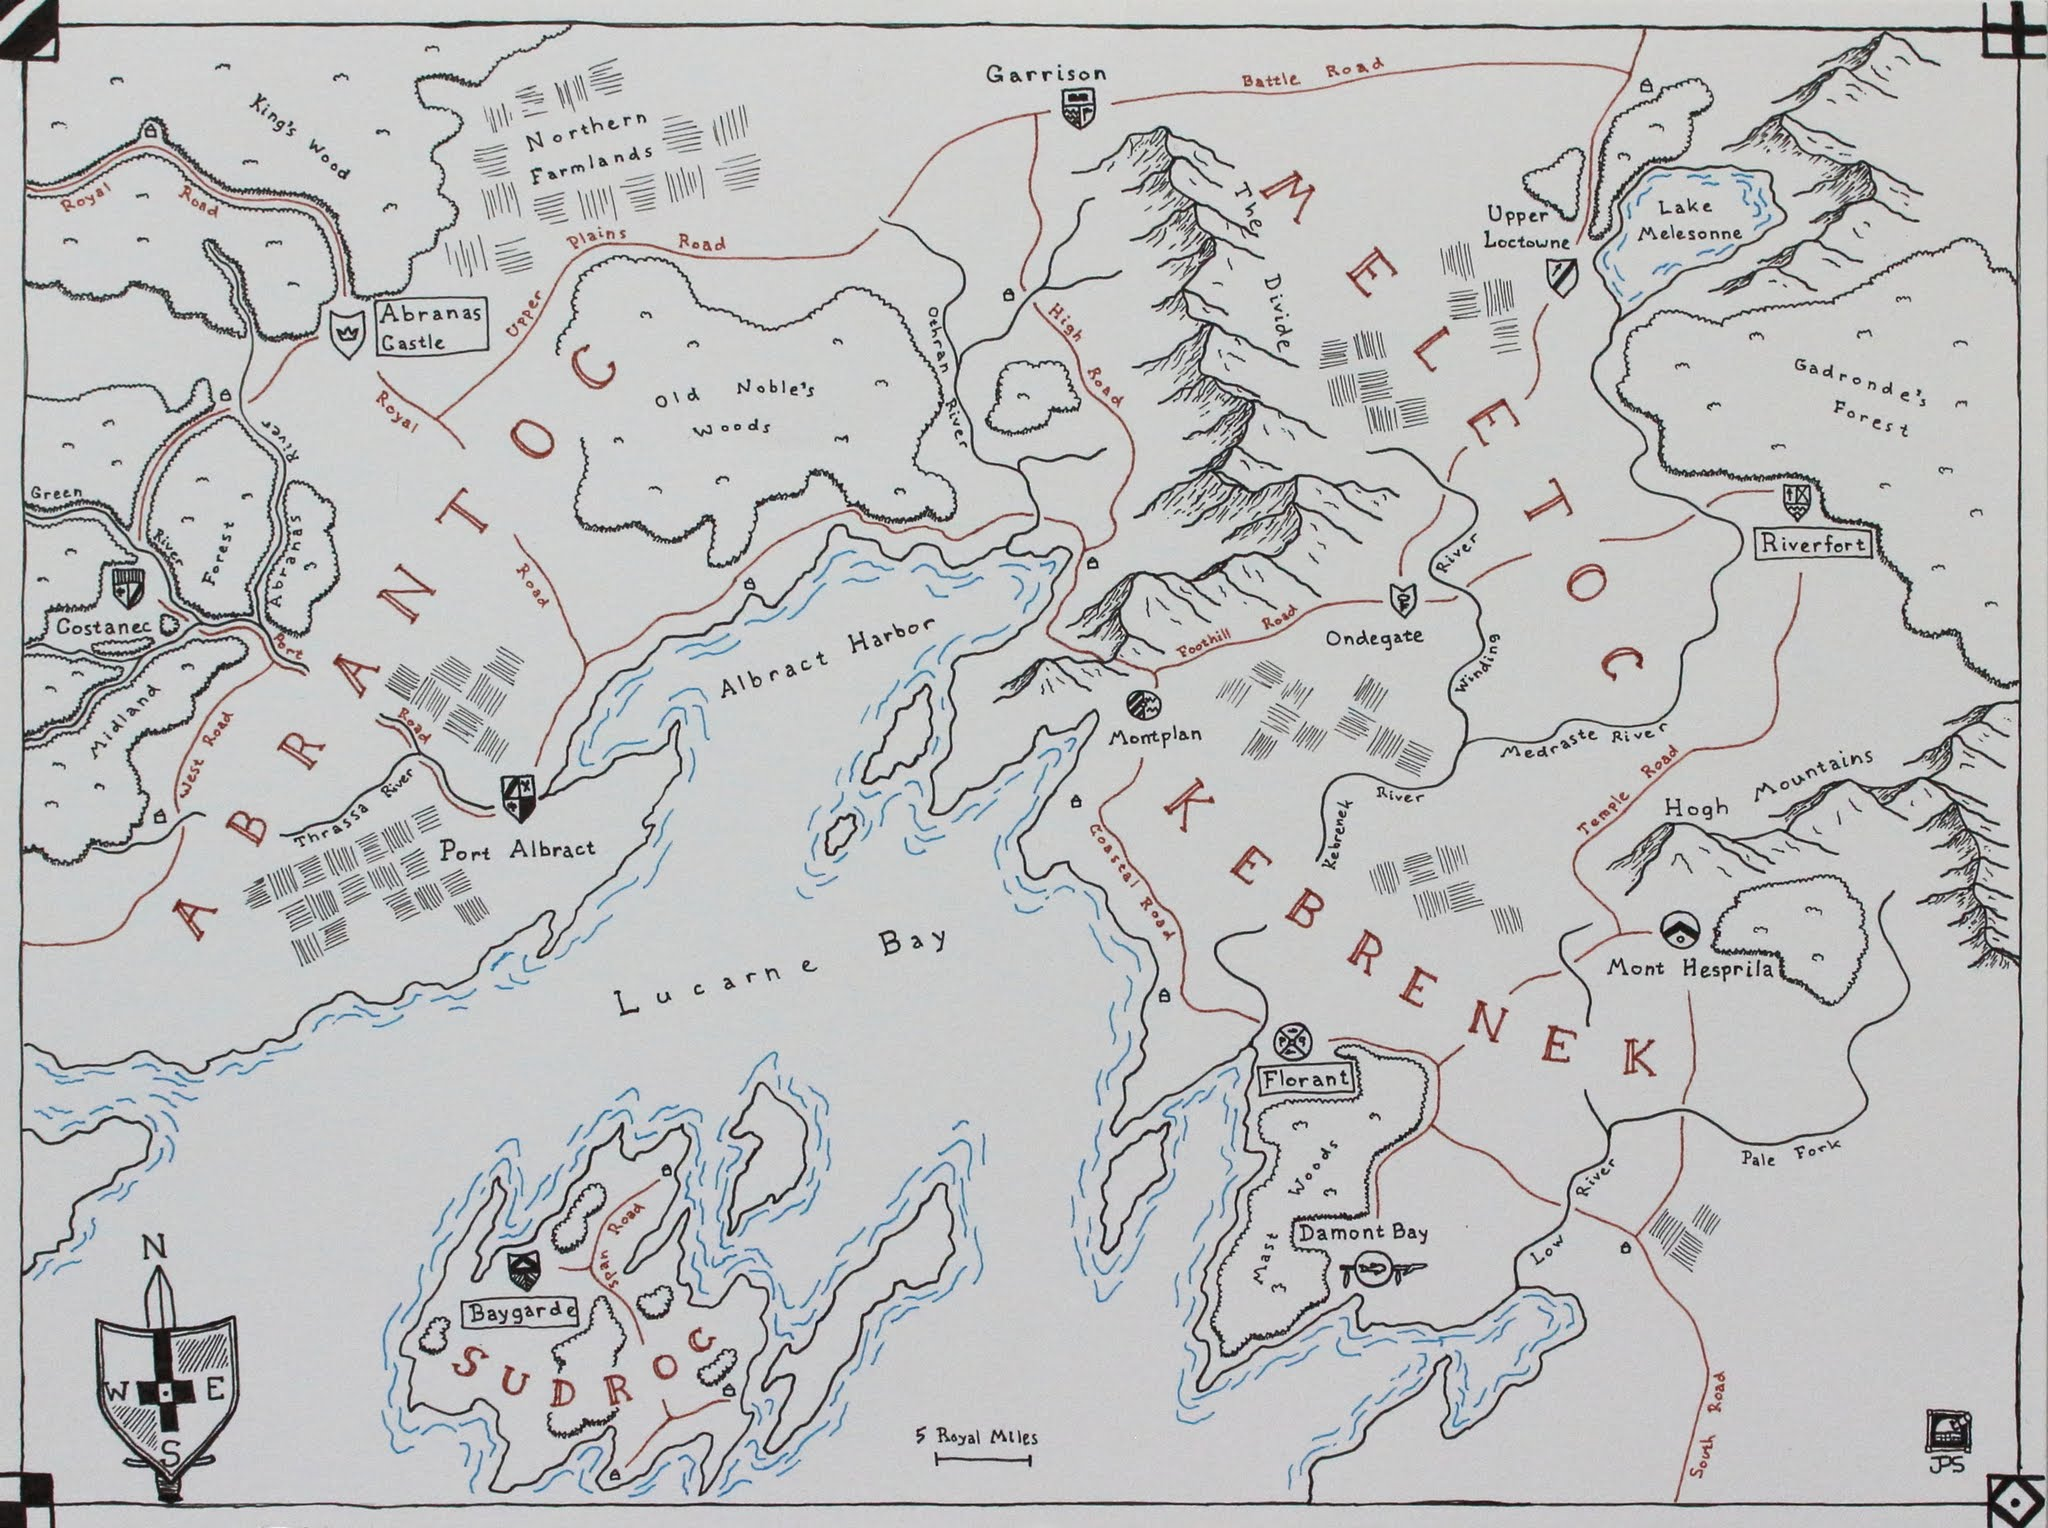 Photo: The Lands of Abrantoc, Meletoc, Kebrenek, and Sudroc